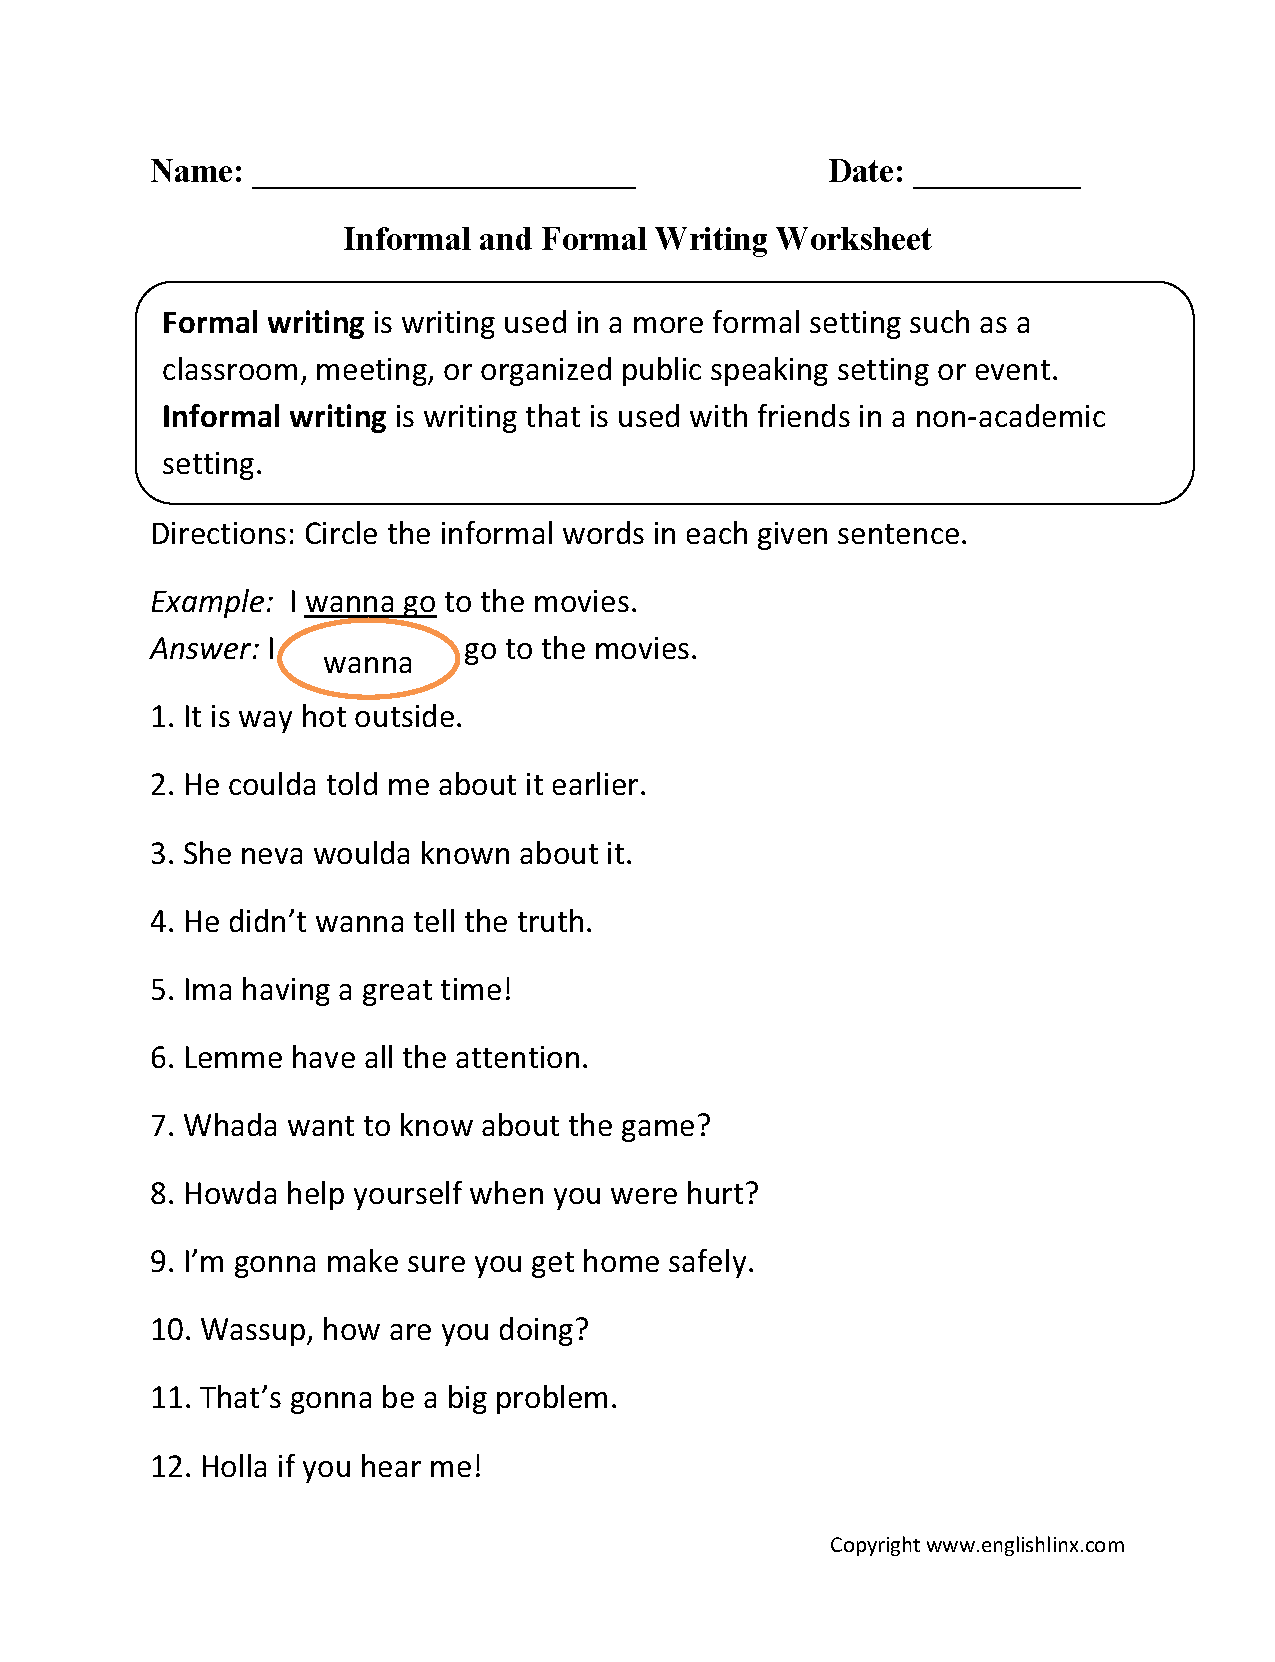 Informal And Formal Writing Worksheet